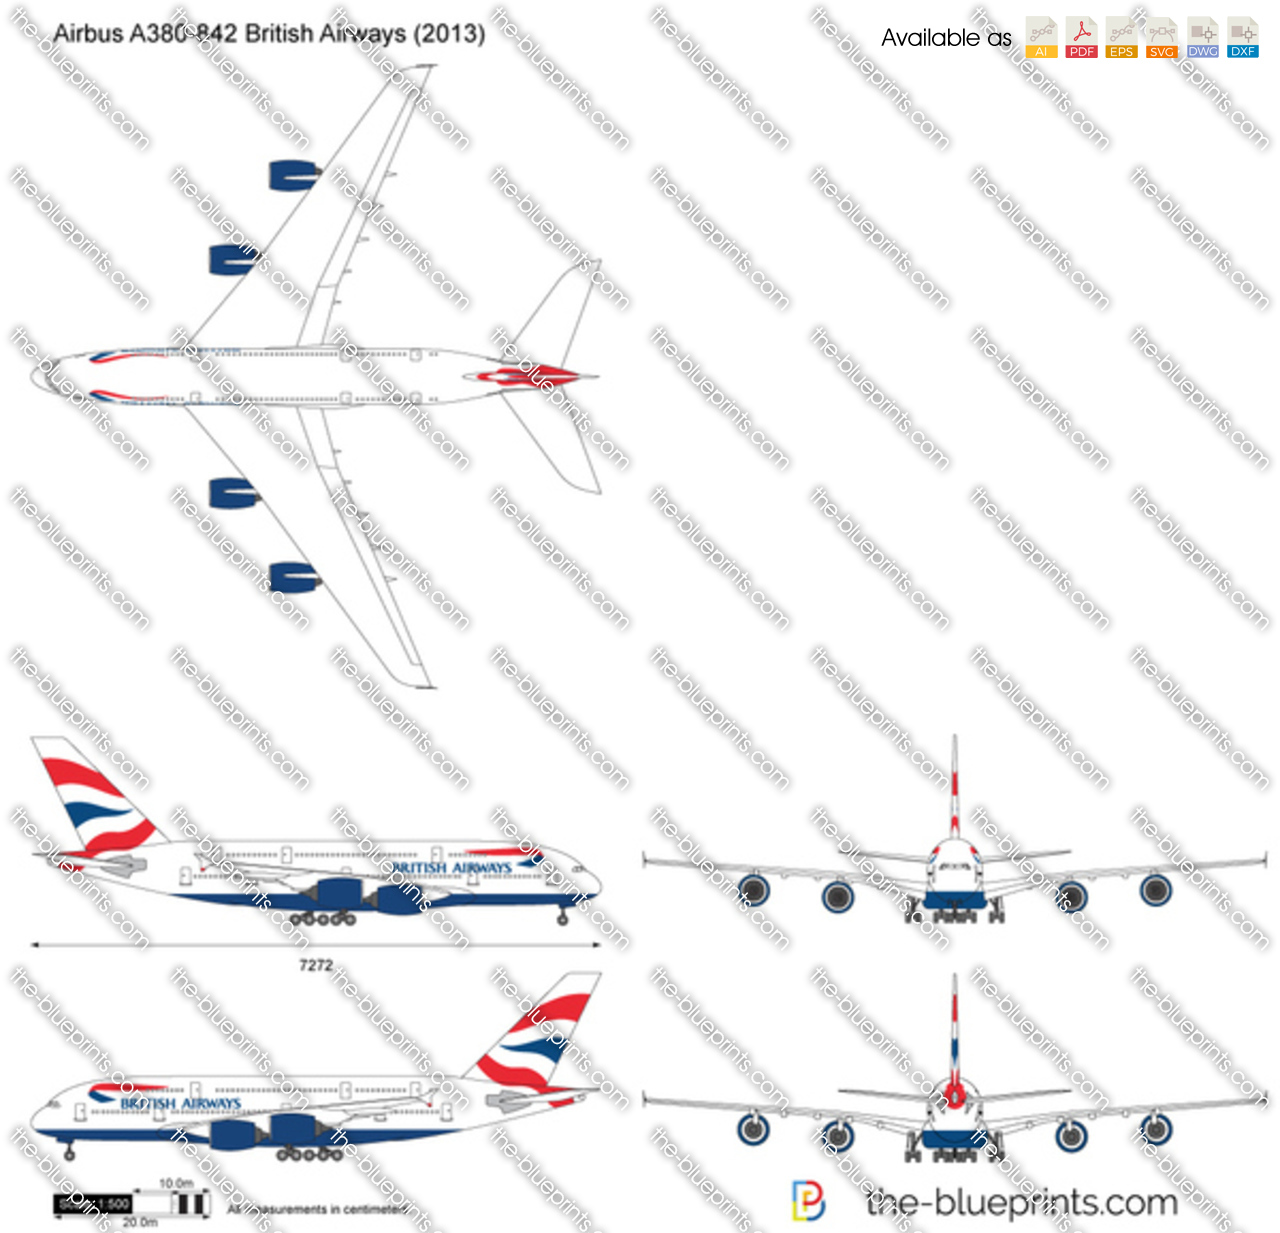 2017 Airbus A380-842 British Airways